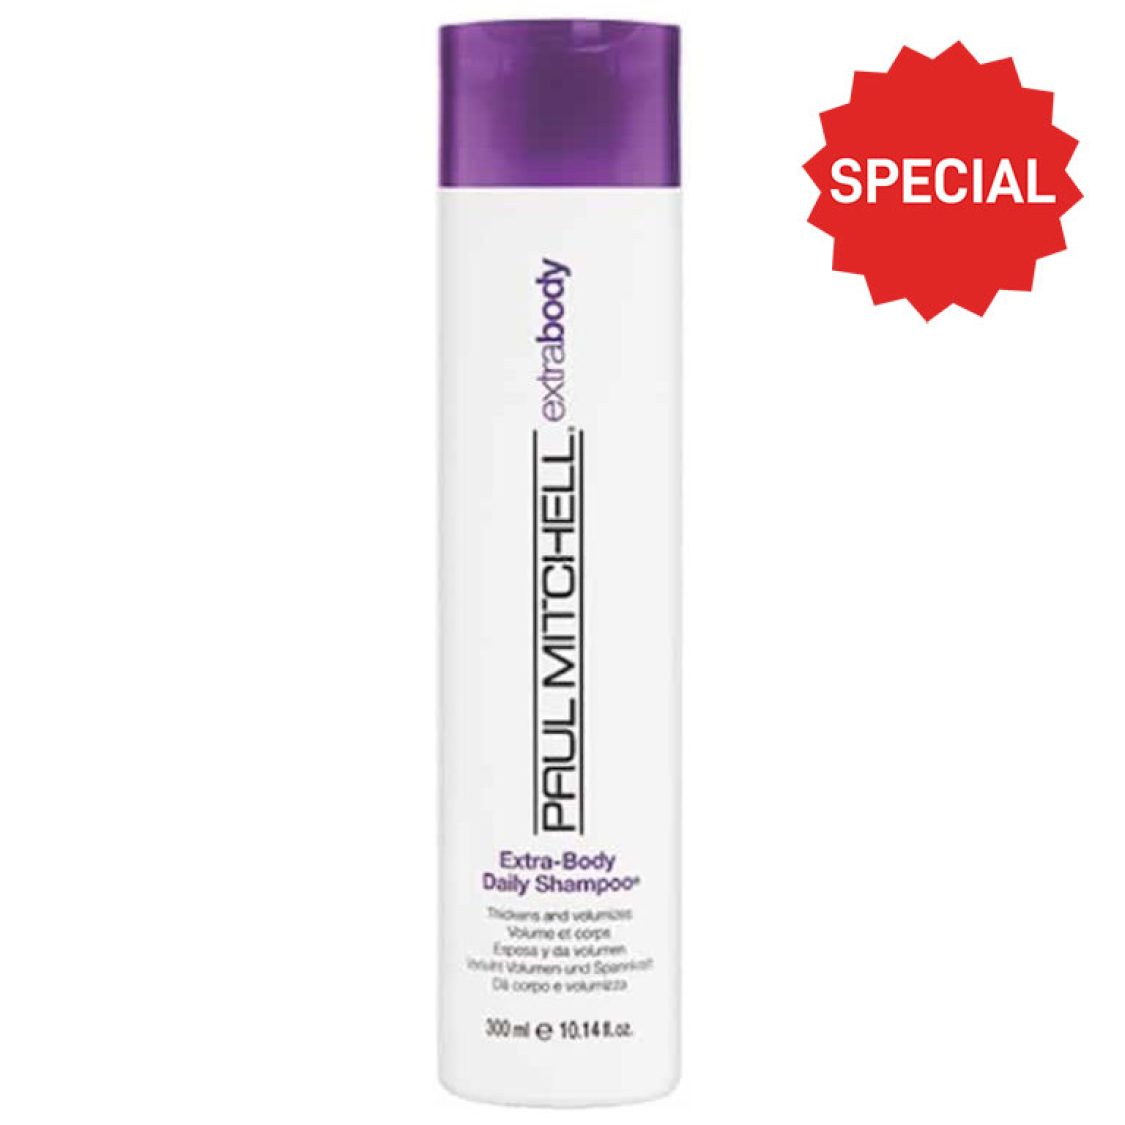 Paul Mitchell - Extra-Body - Daily Shampoo 300ml